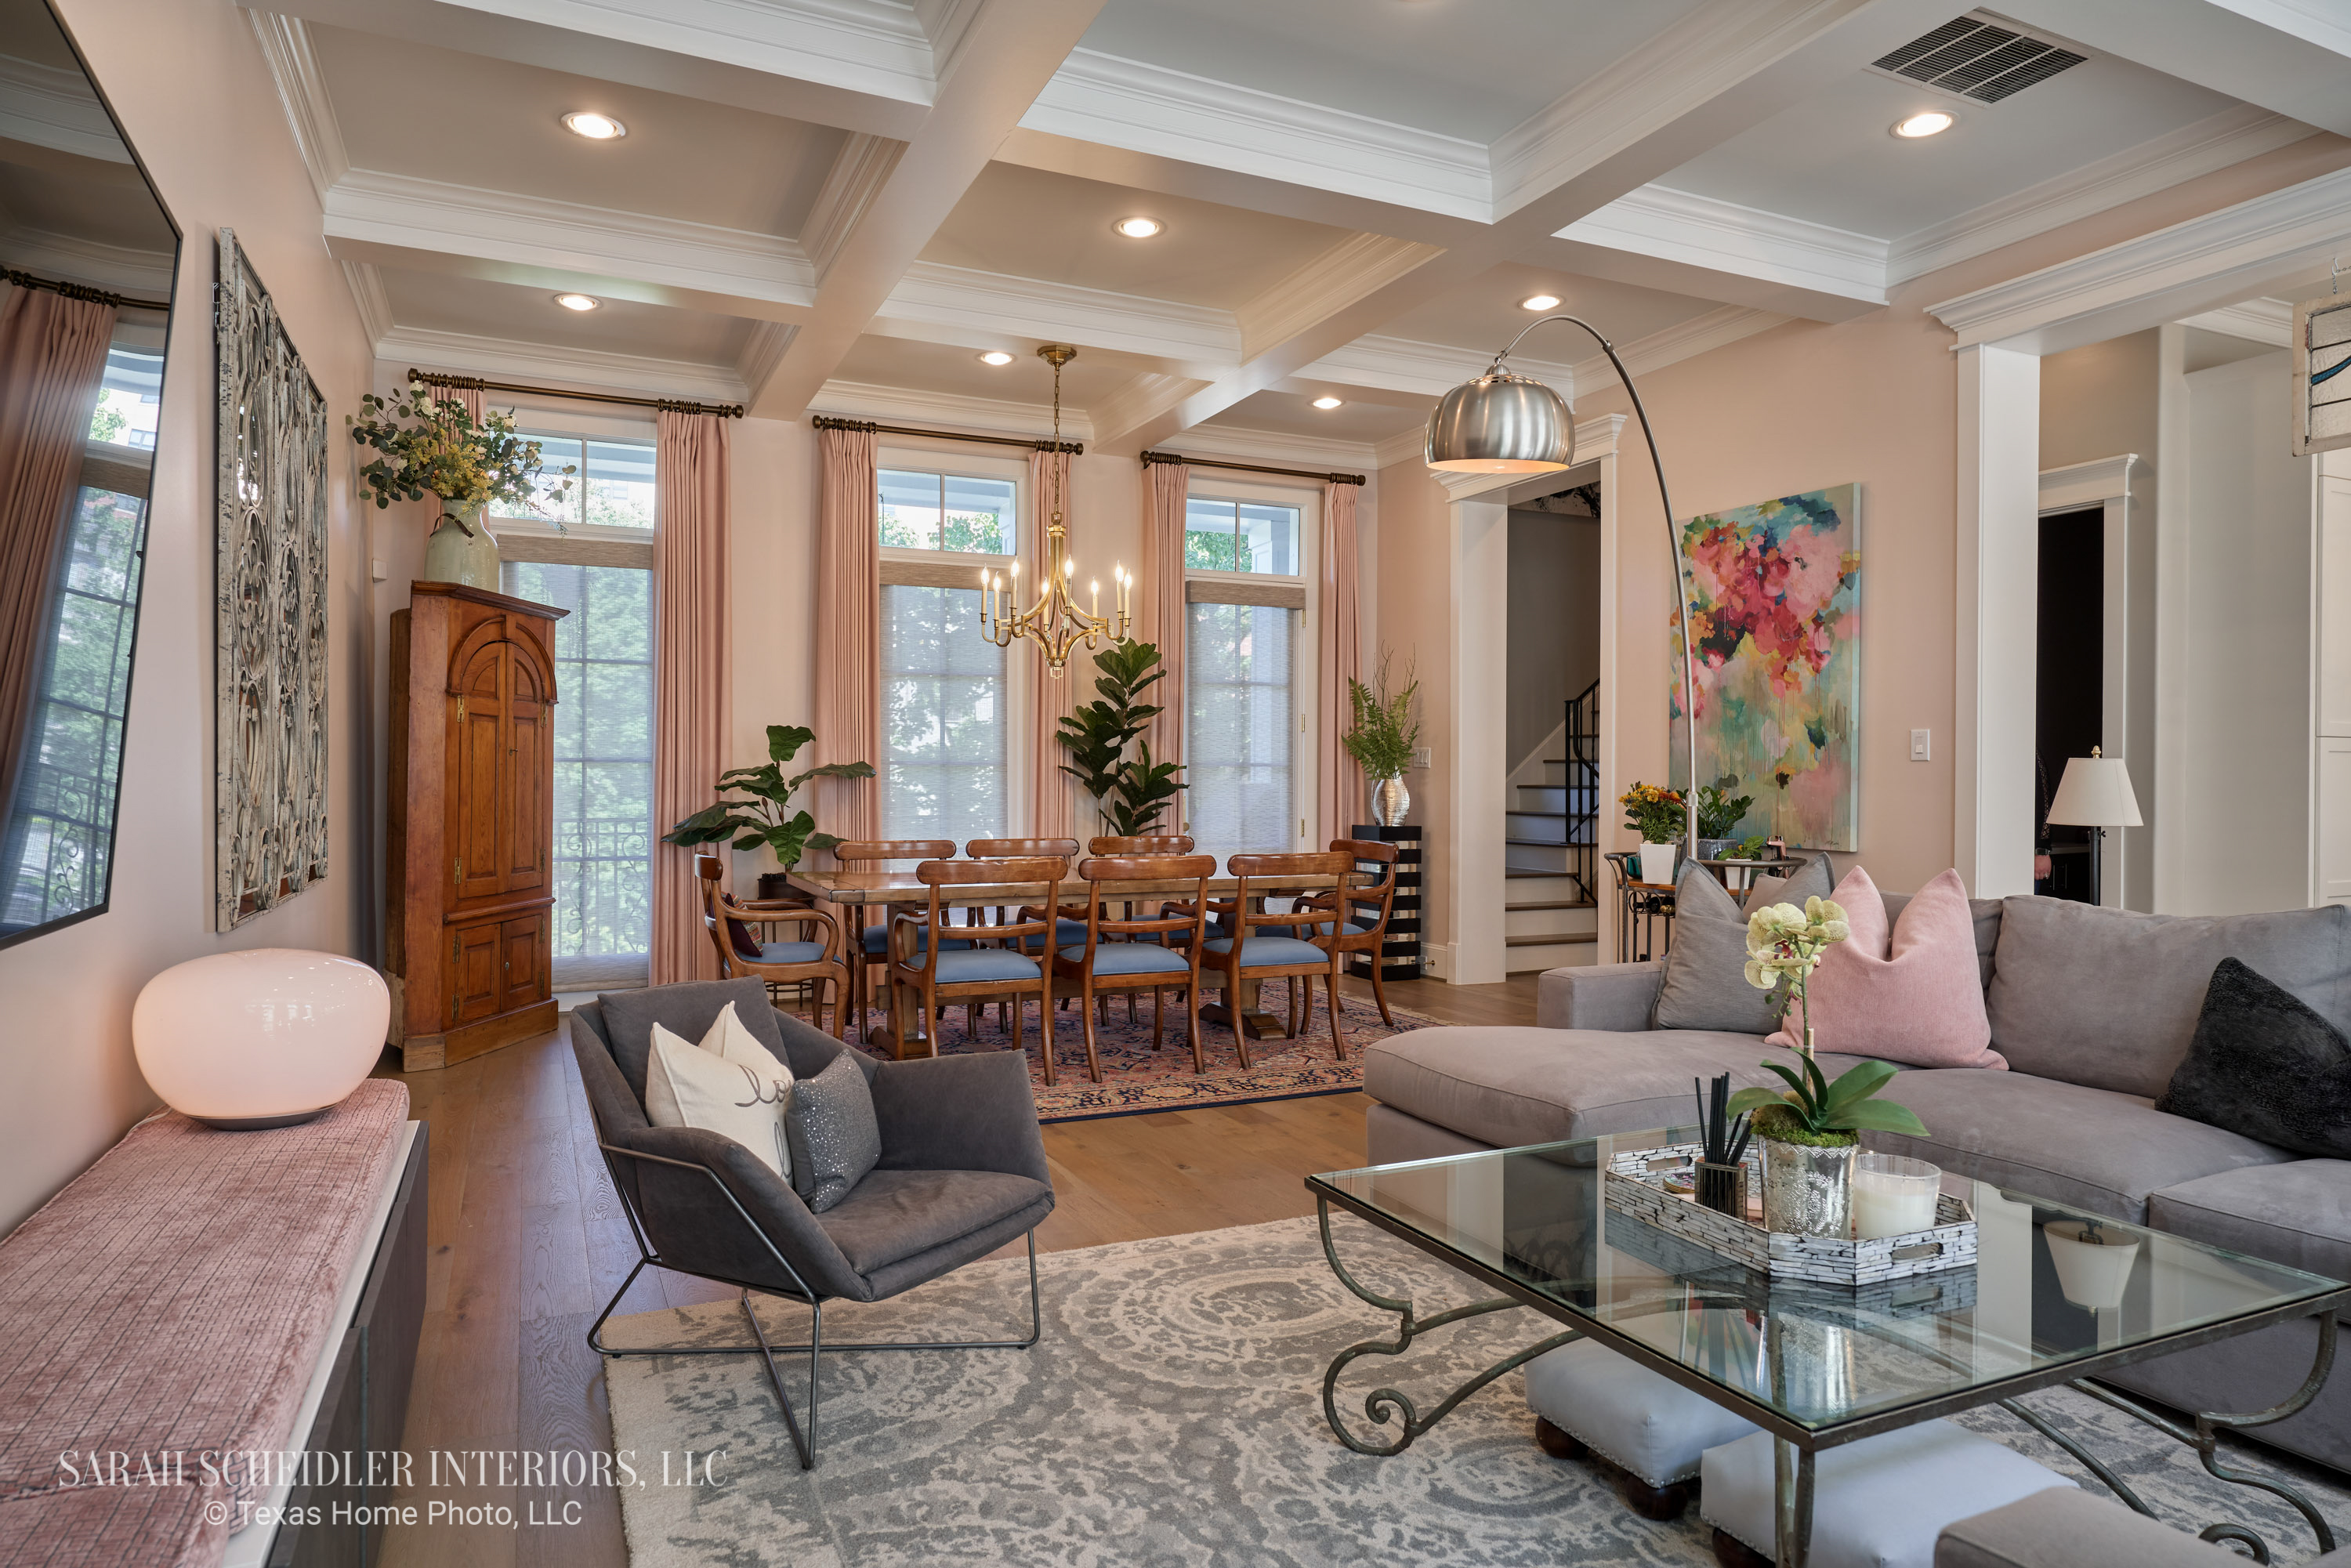 Open-Concept Living Room and Dining Room Design with Pops of Color, Decorative Wall Mirrors, Custom Drapes, and Antique Dining Set